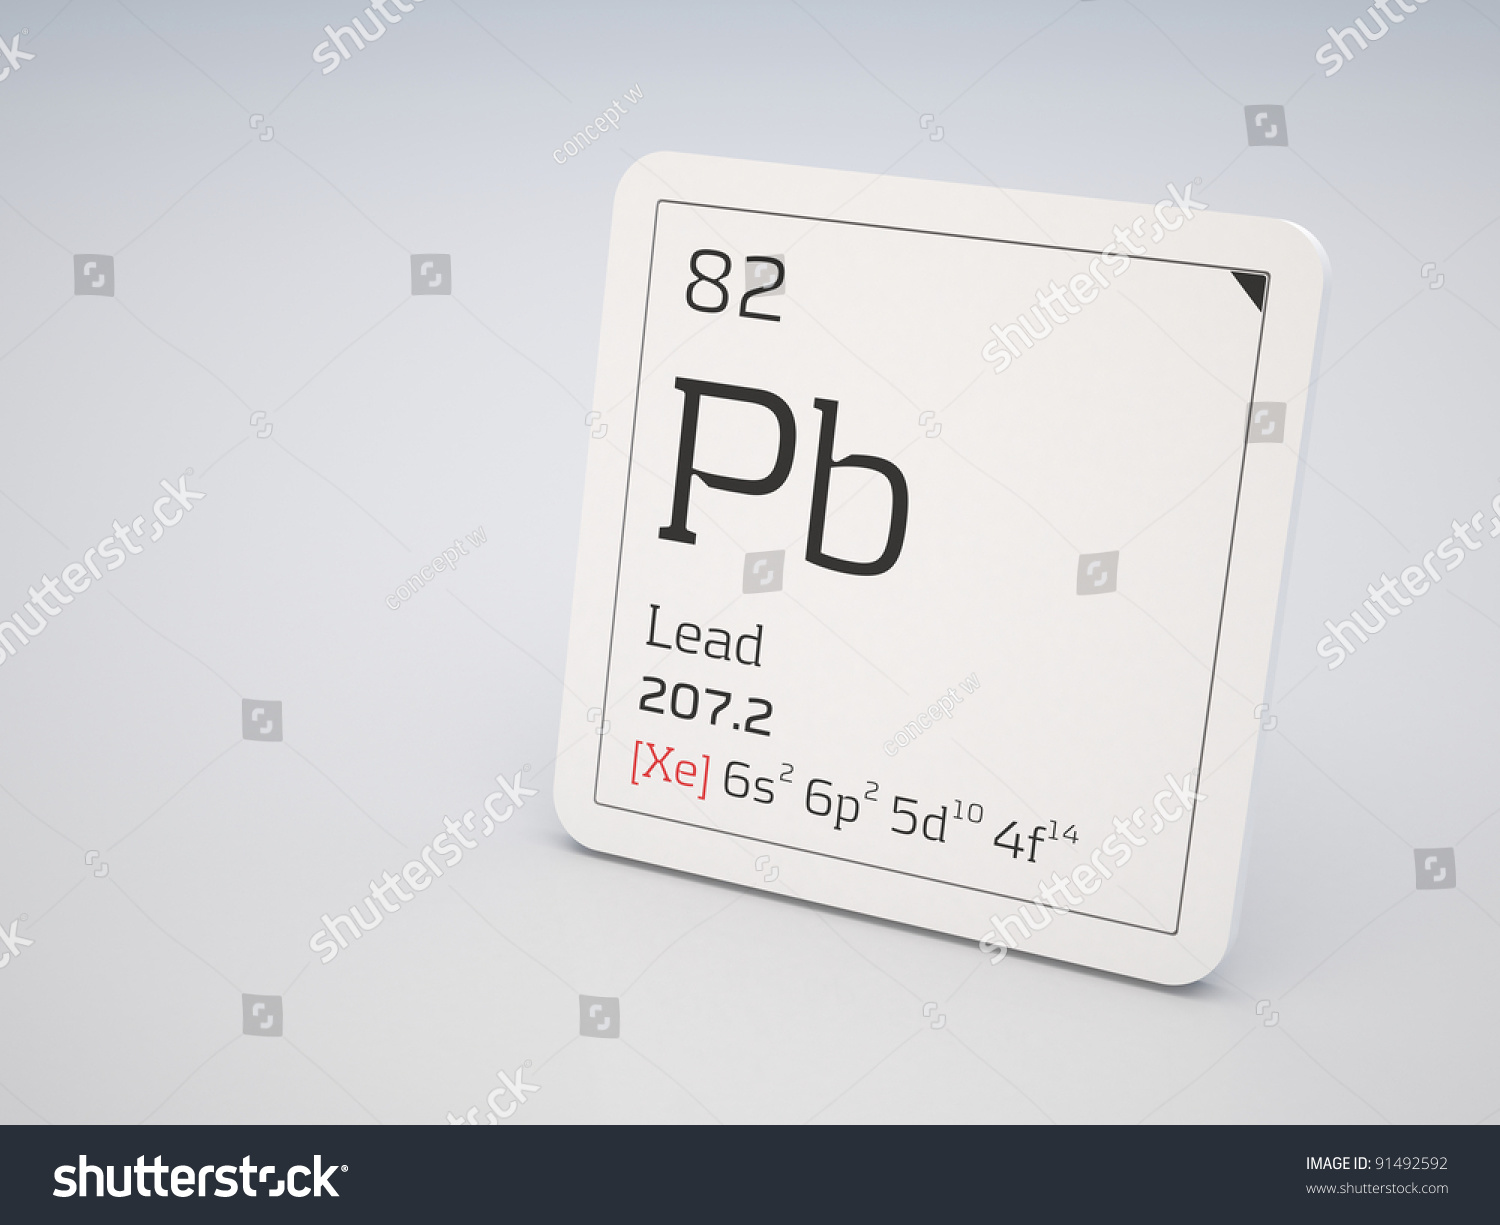 Lead element periodic table stock illustration 91492592 shutterstock lead element of the periodic table gamestrikefo Choice Image